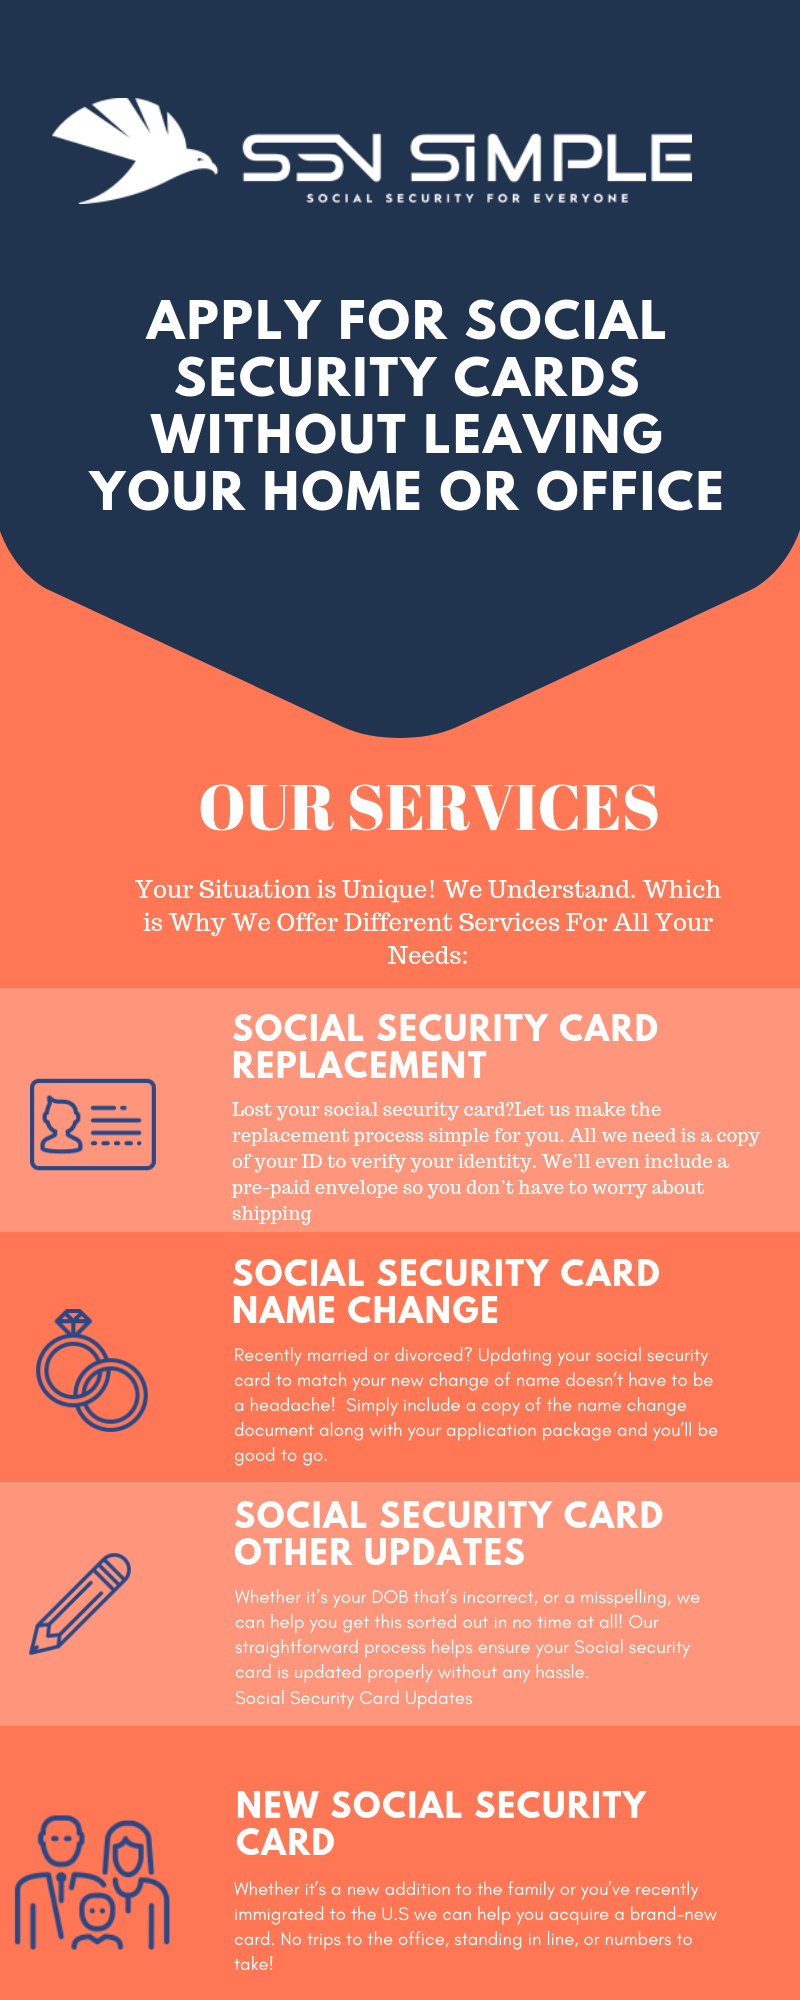 updating name on social security card